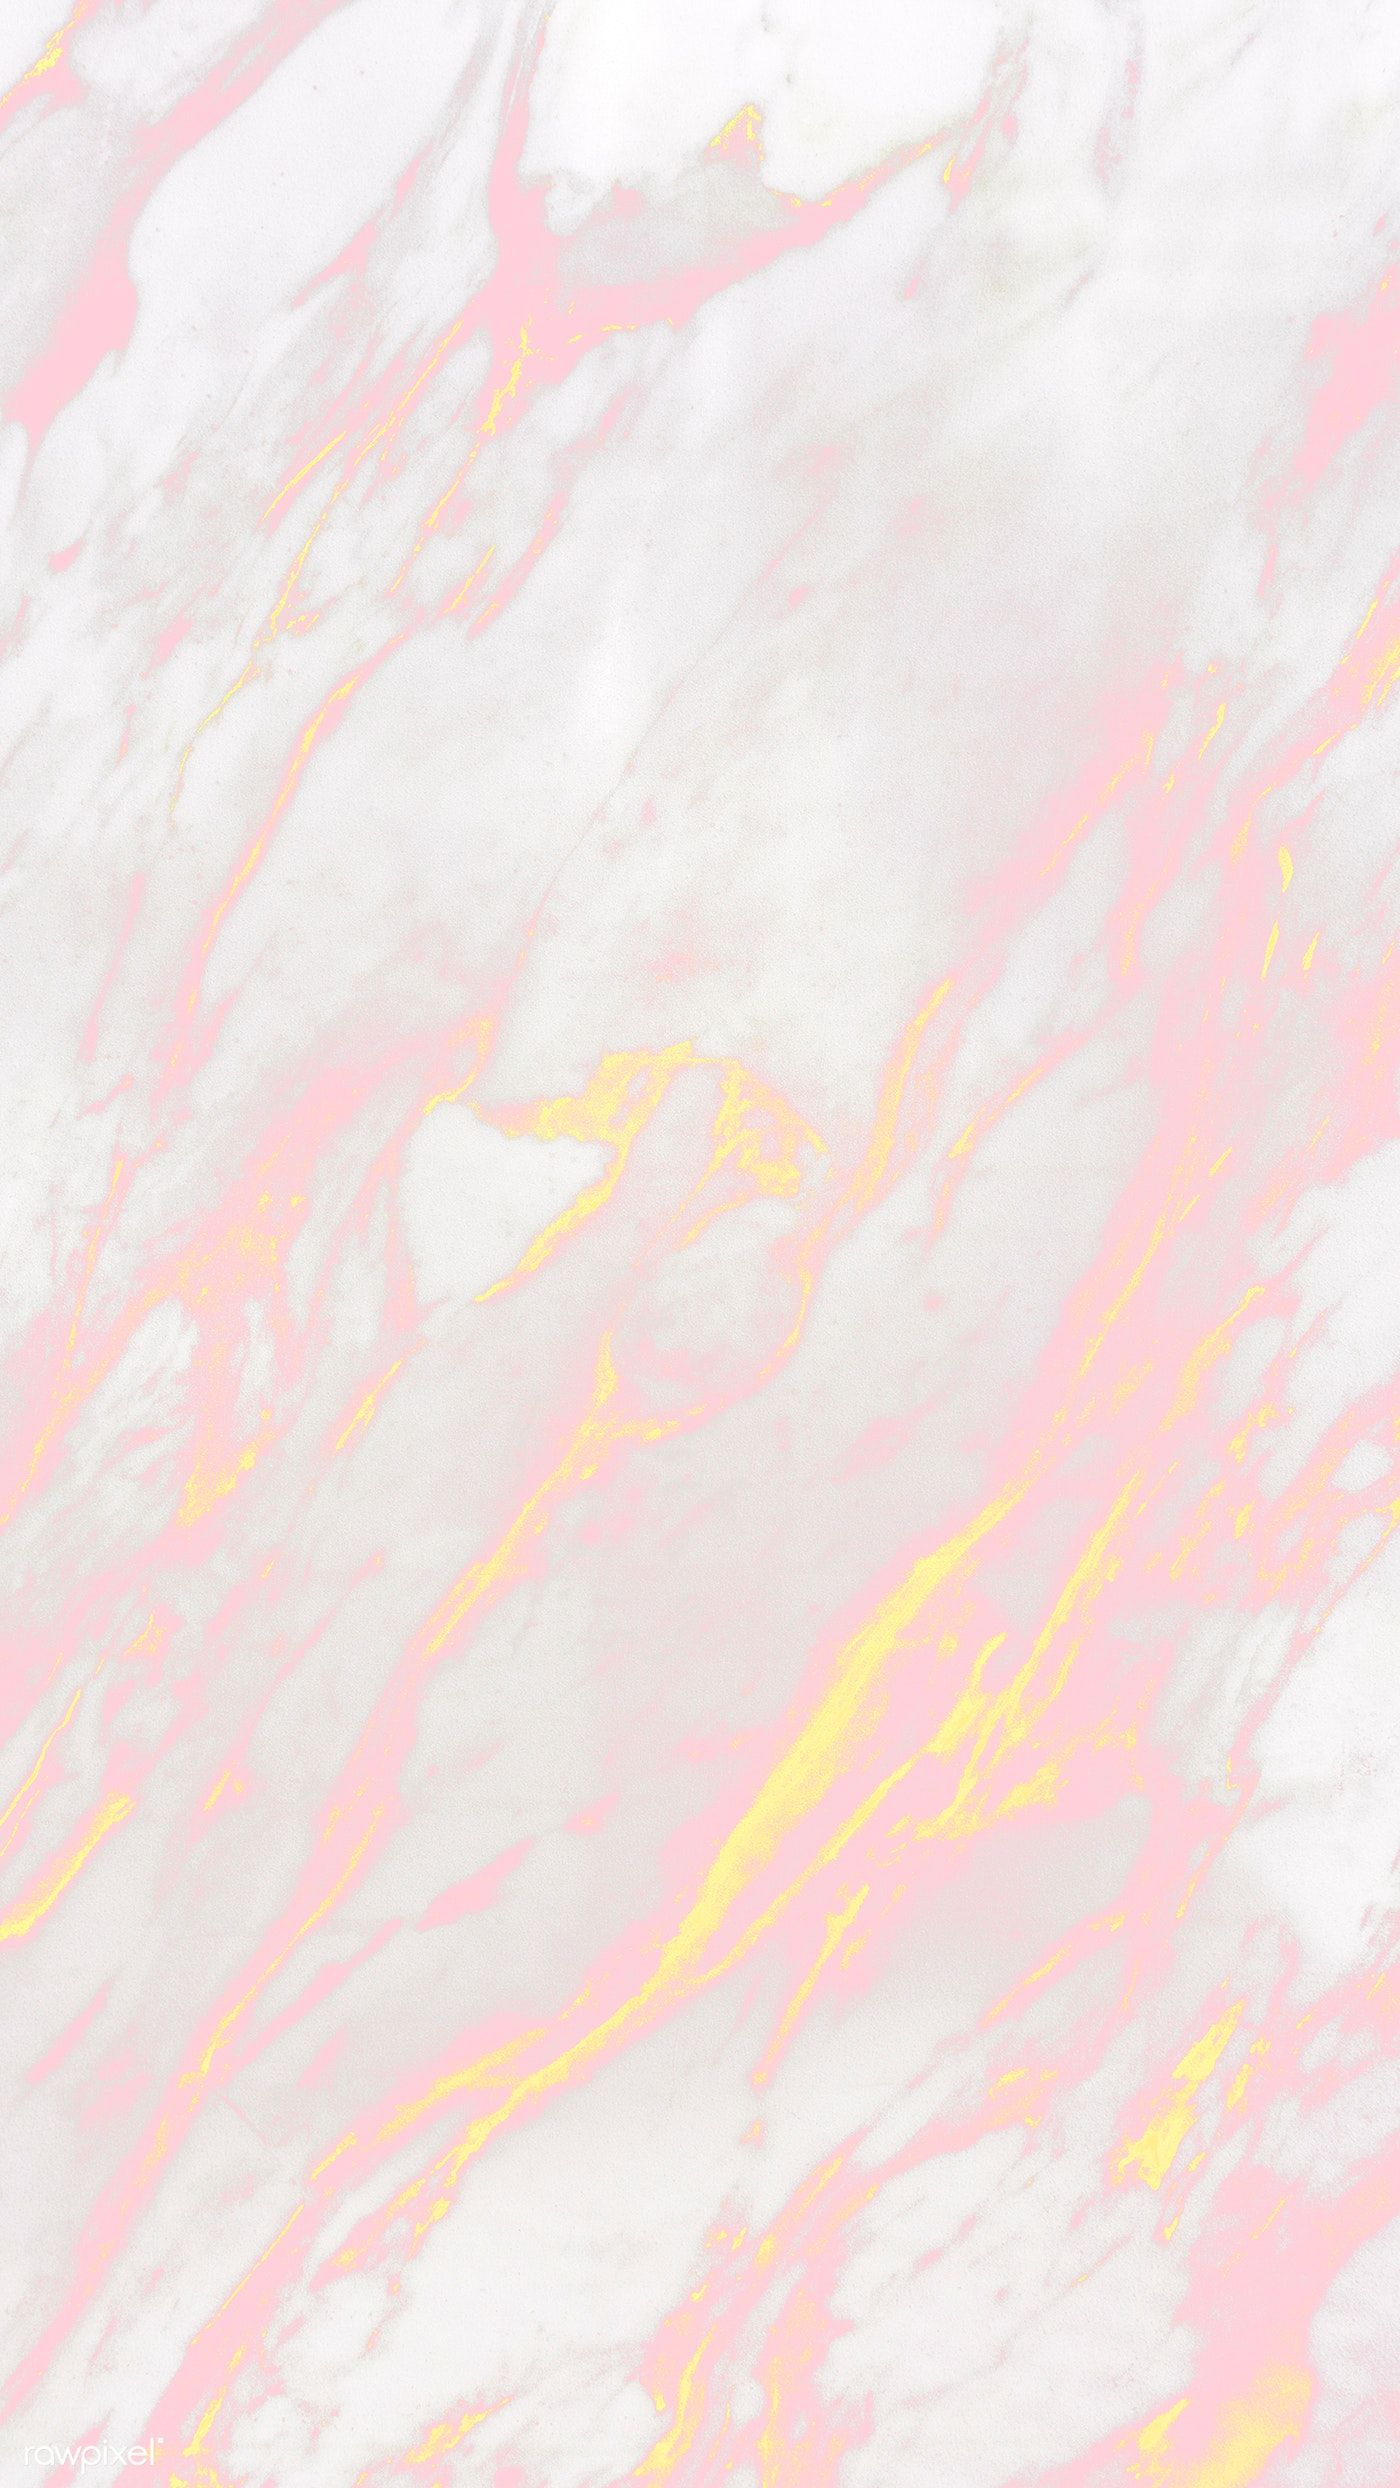 Aesthetic Pink Marble Wallpapers